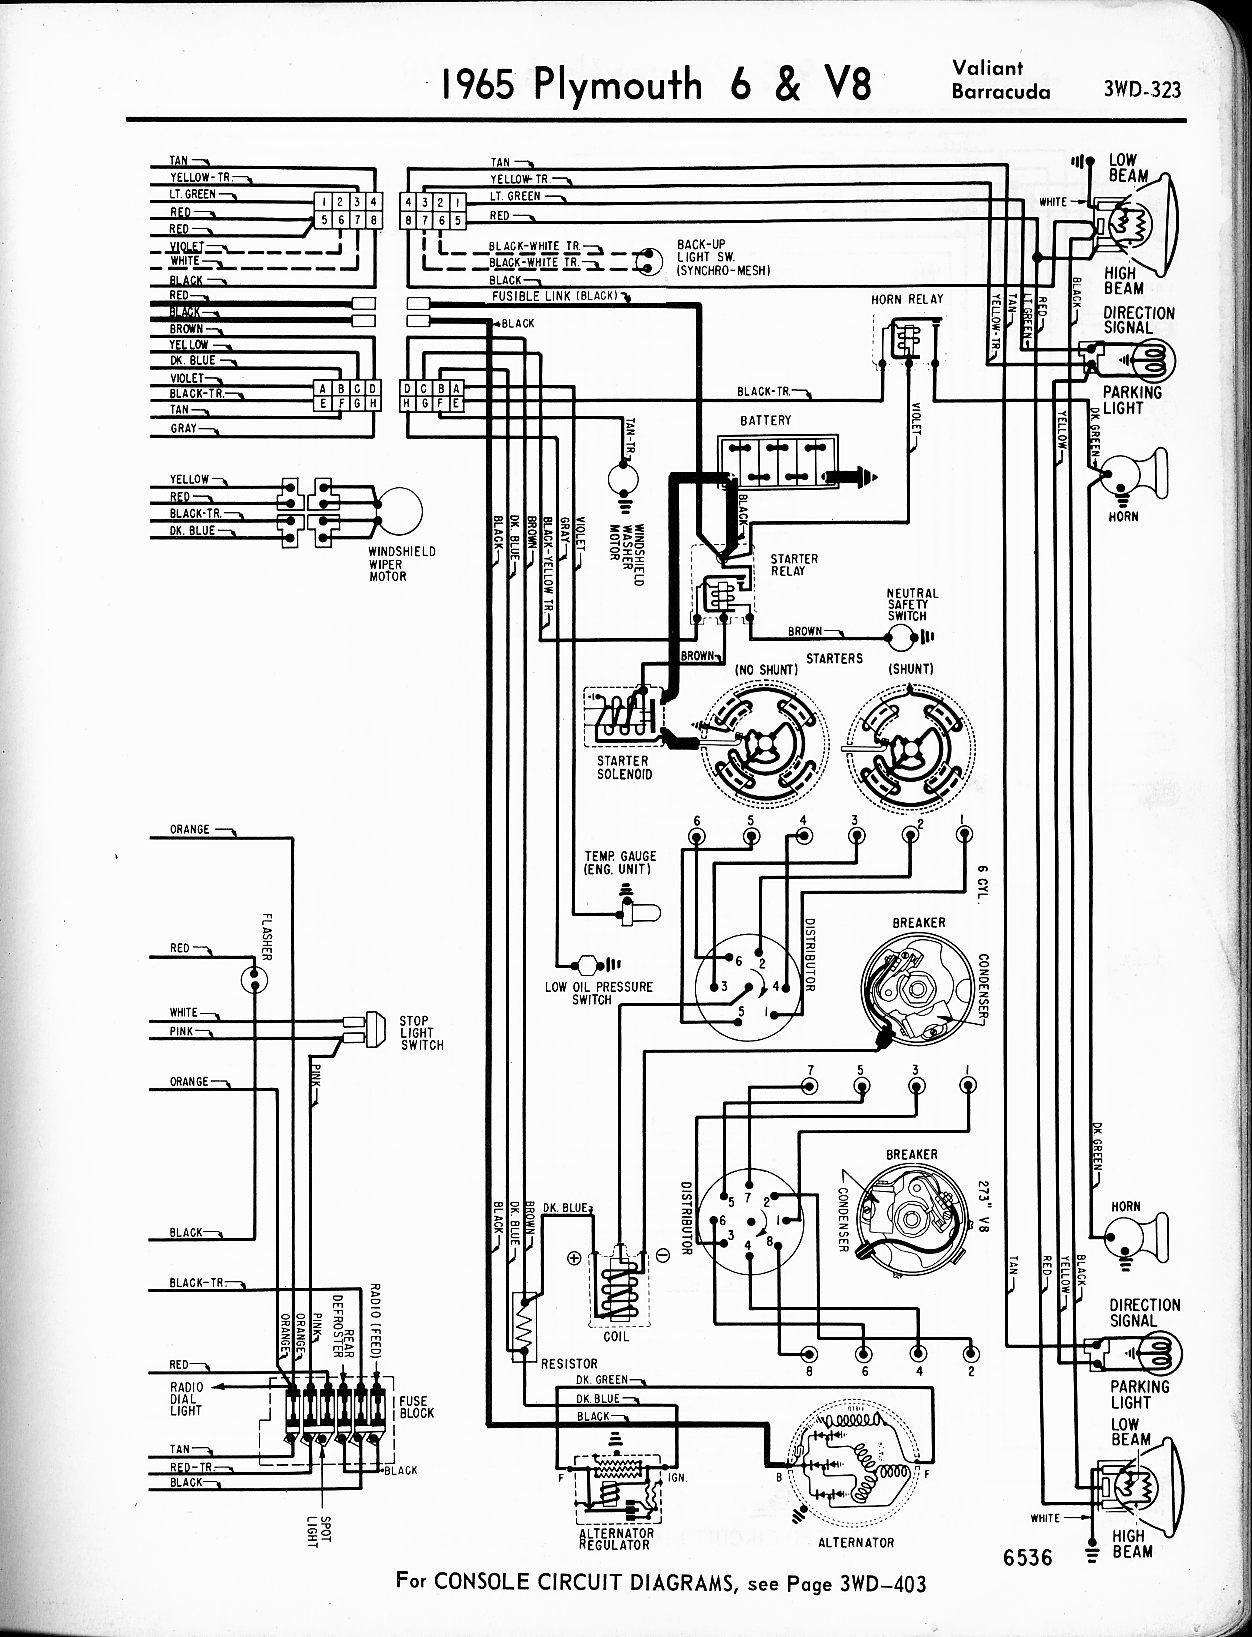 MWire5765 323?resize\\\=665%2C869 dtx gnp 40048 wiring diagram dtx wiring diagrams collection  at readyjetset.co